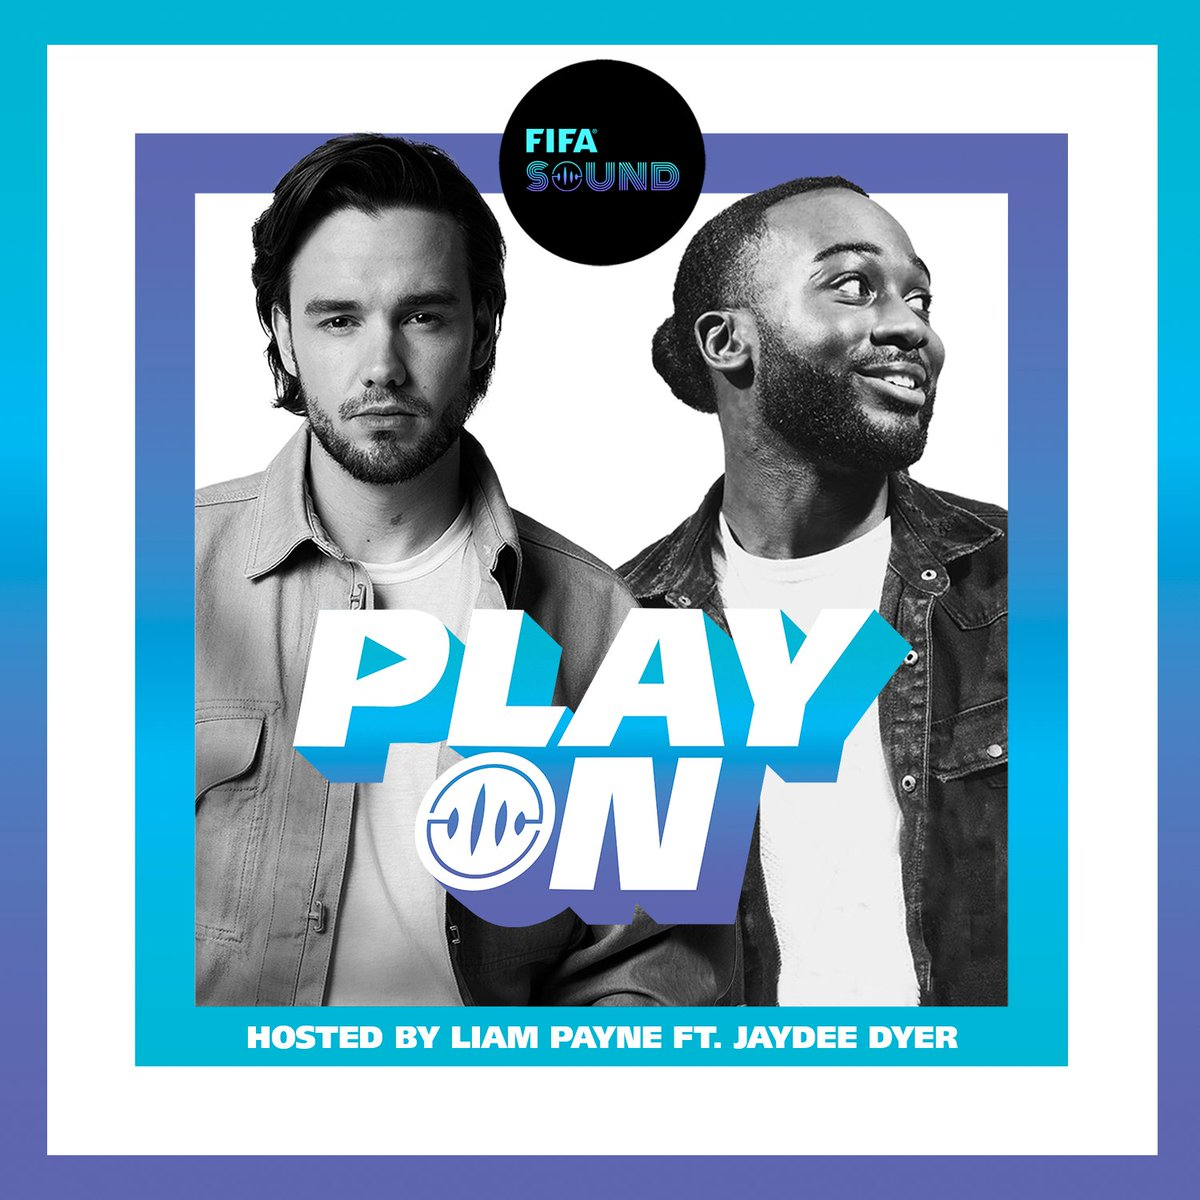 Excited to announce that I'm joining @LiamPayne as co-host for the first ever series of @fifaworldcup's PlayOn podcast! Today we kick off with @IvanRakitic and @MoratBanda -  Listen here:    #PLAYON #FIFASOUND @FIFAWorldCup  @FIFAcom